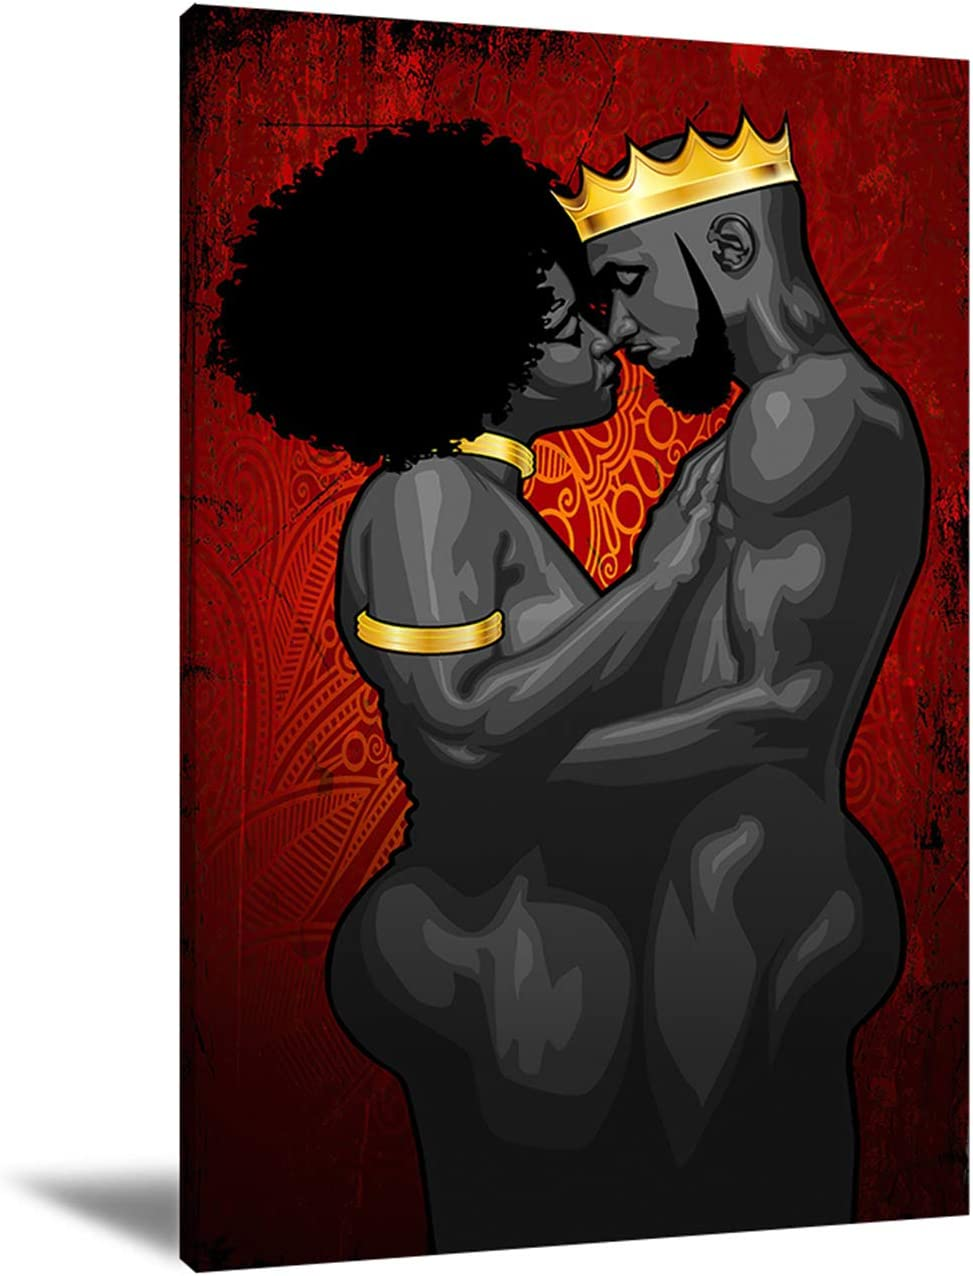 African American Red Canvas Wall Art Black King And Queen Prints Pictures Contemporary Home Decor For Living Room Bedroom 40x60cm Frameless